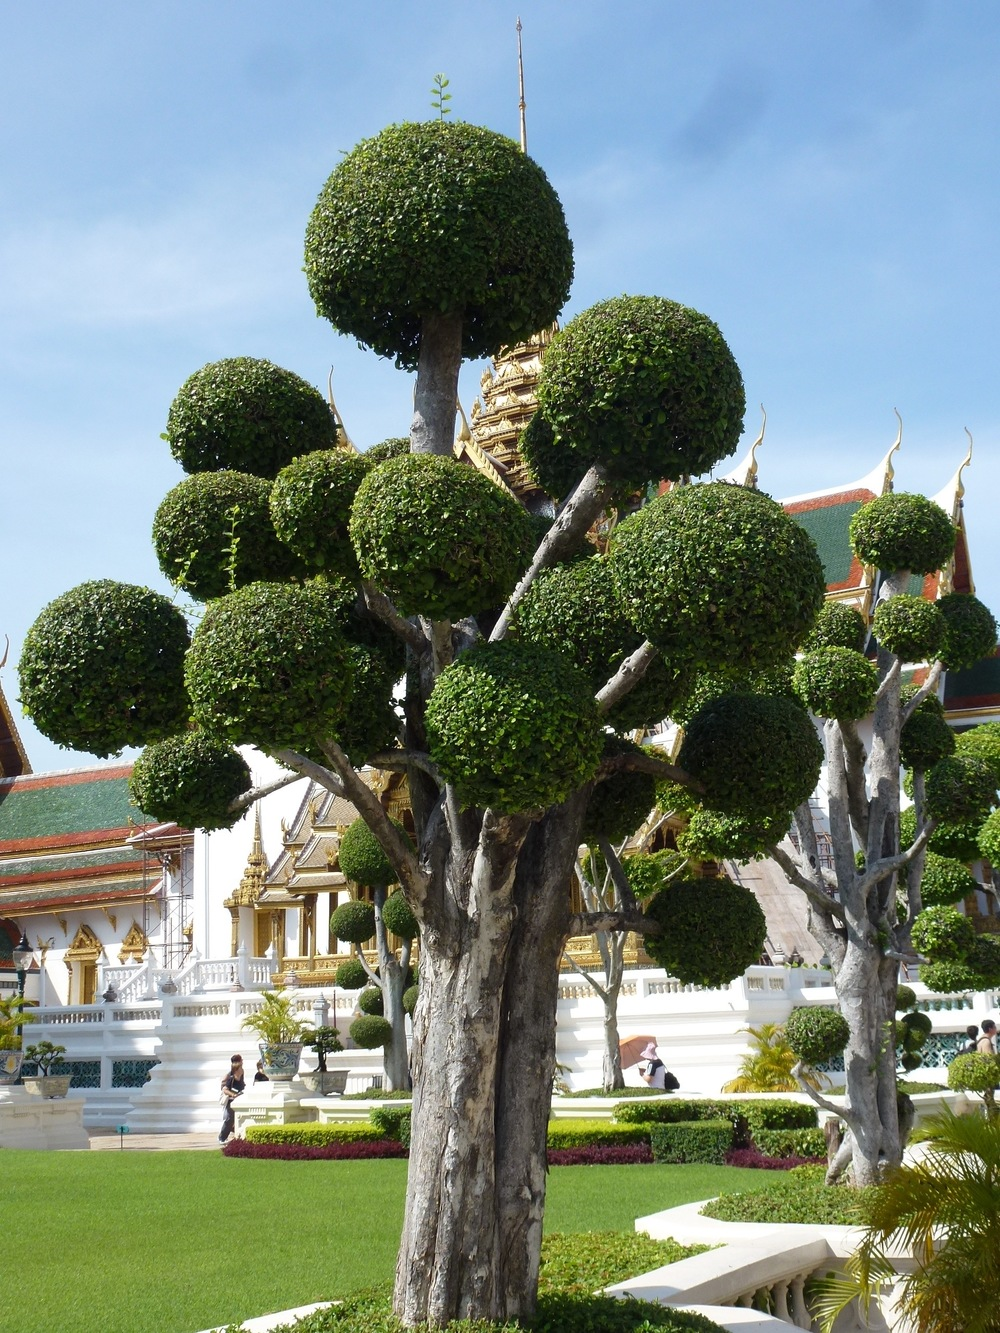 The Royal Palace with landscaping by Dr. Seuss.